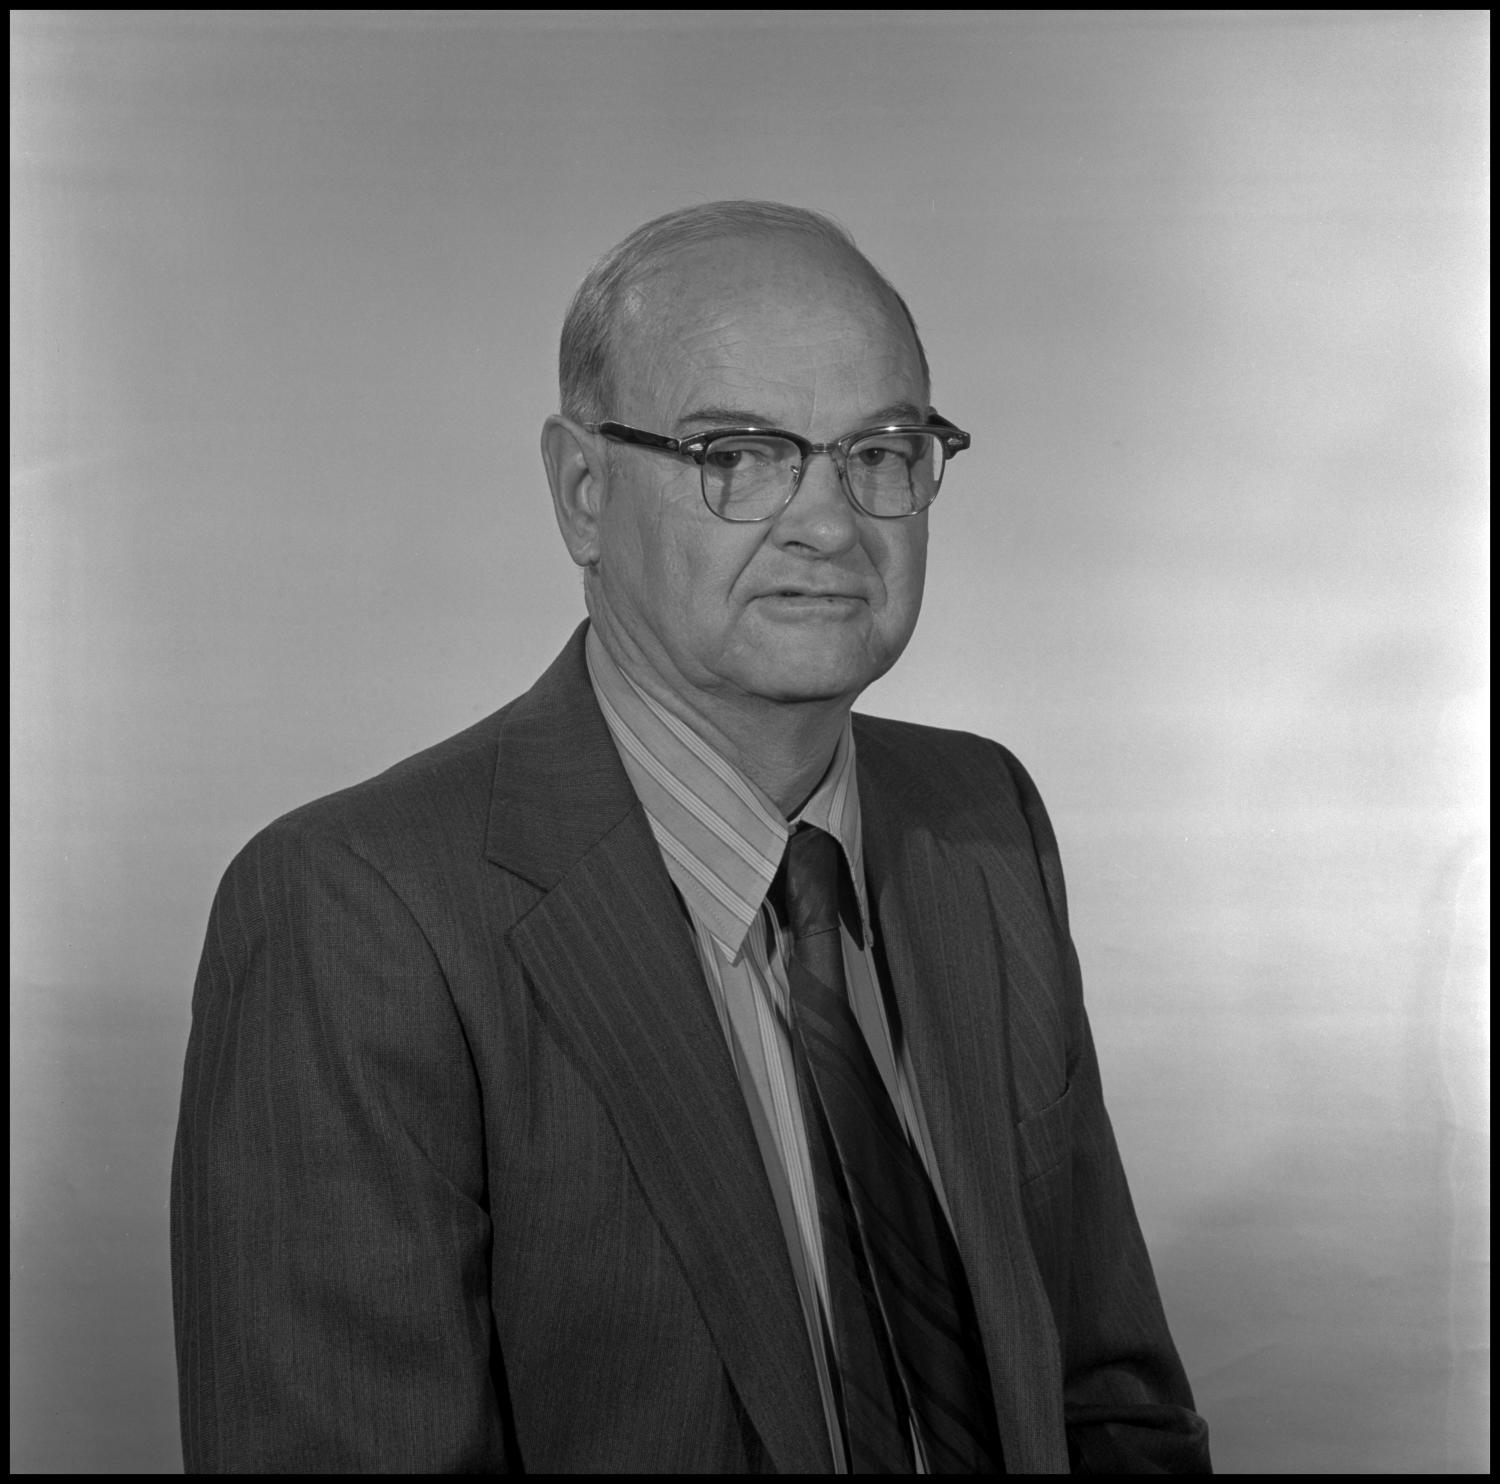 [Garland Brookshear portrait], Photograph of Garland Brookshear, a member of the Management faculty at NTSU, sitting for a portrait photo. He is wearing a suit with a striped shirt and tie, as well as a pair of glasses.,